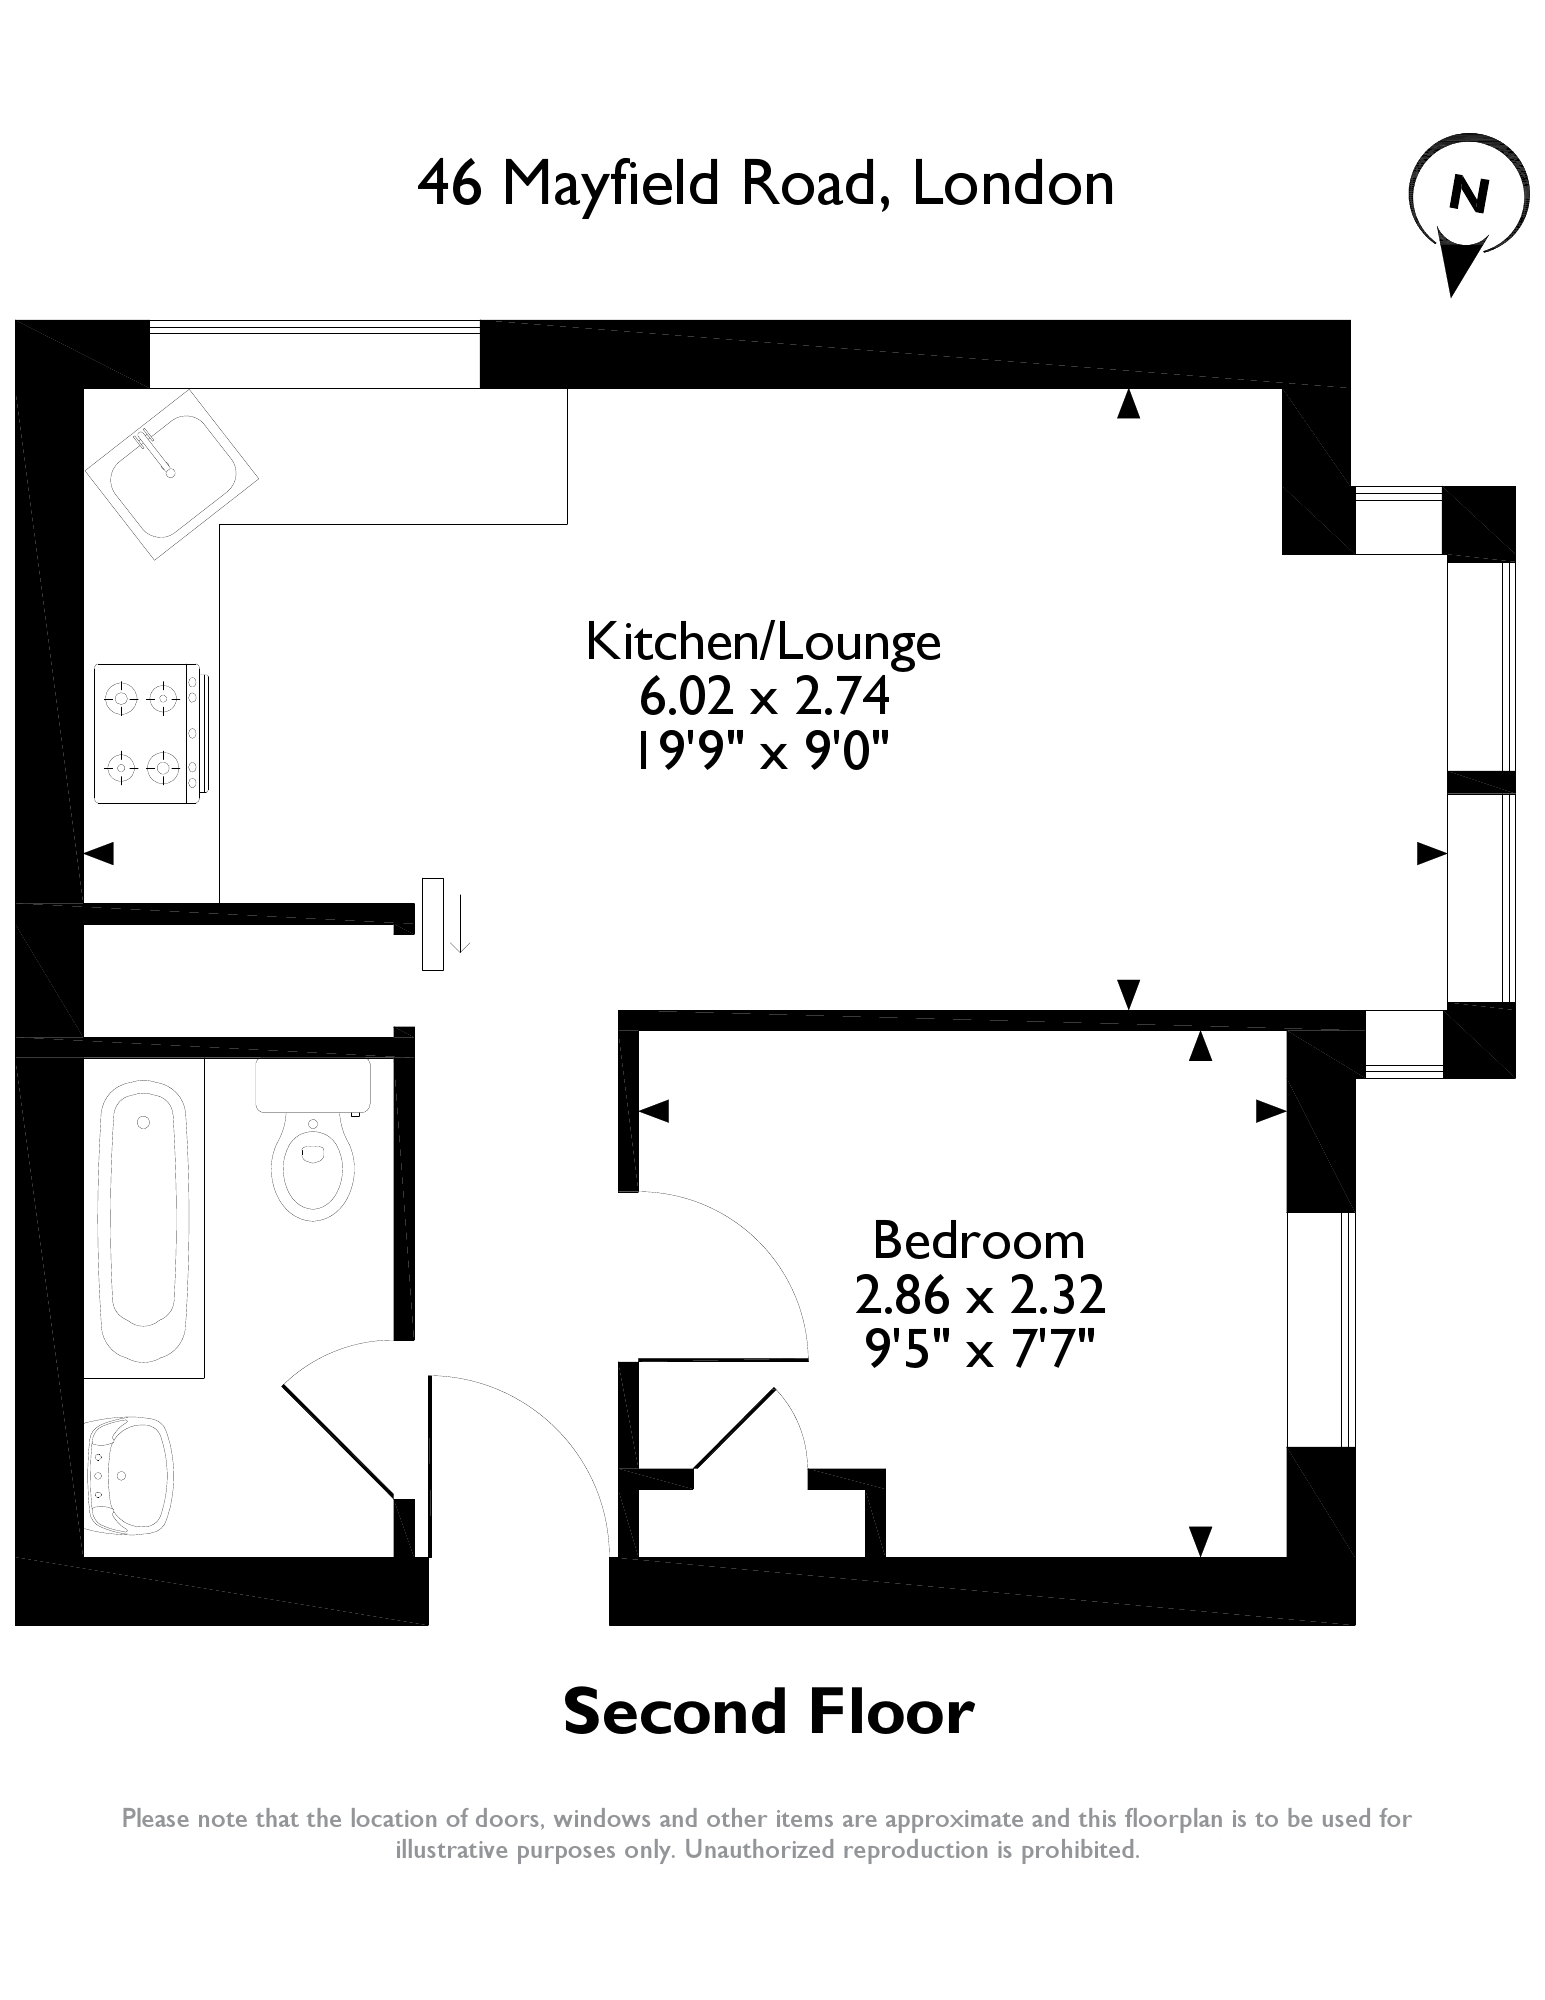 Mayfield Road, London floor plan